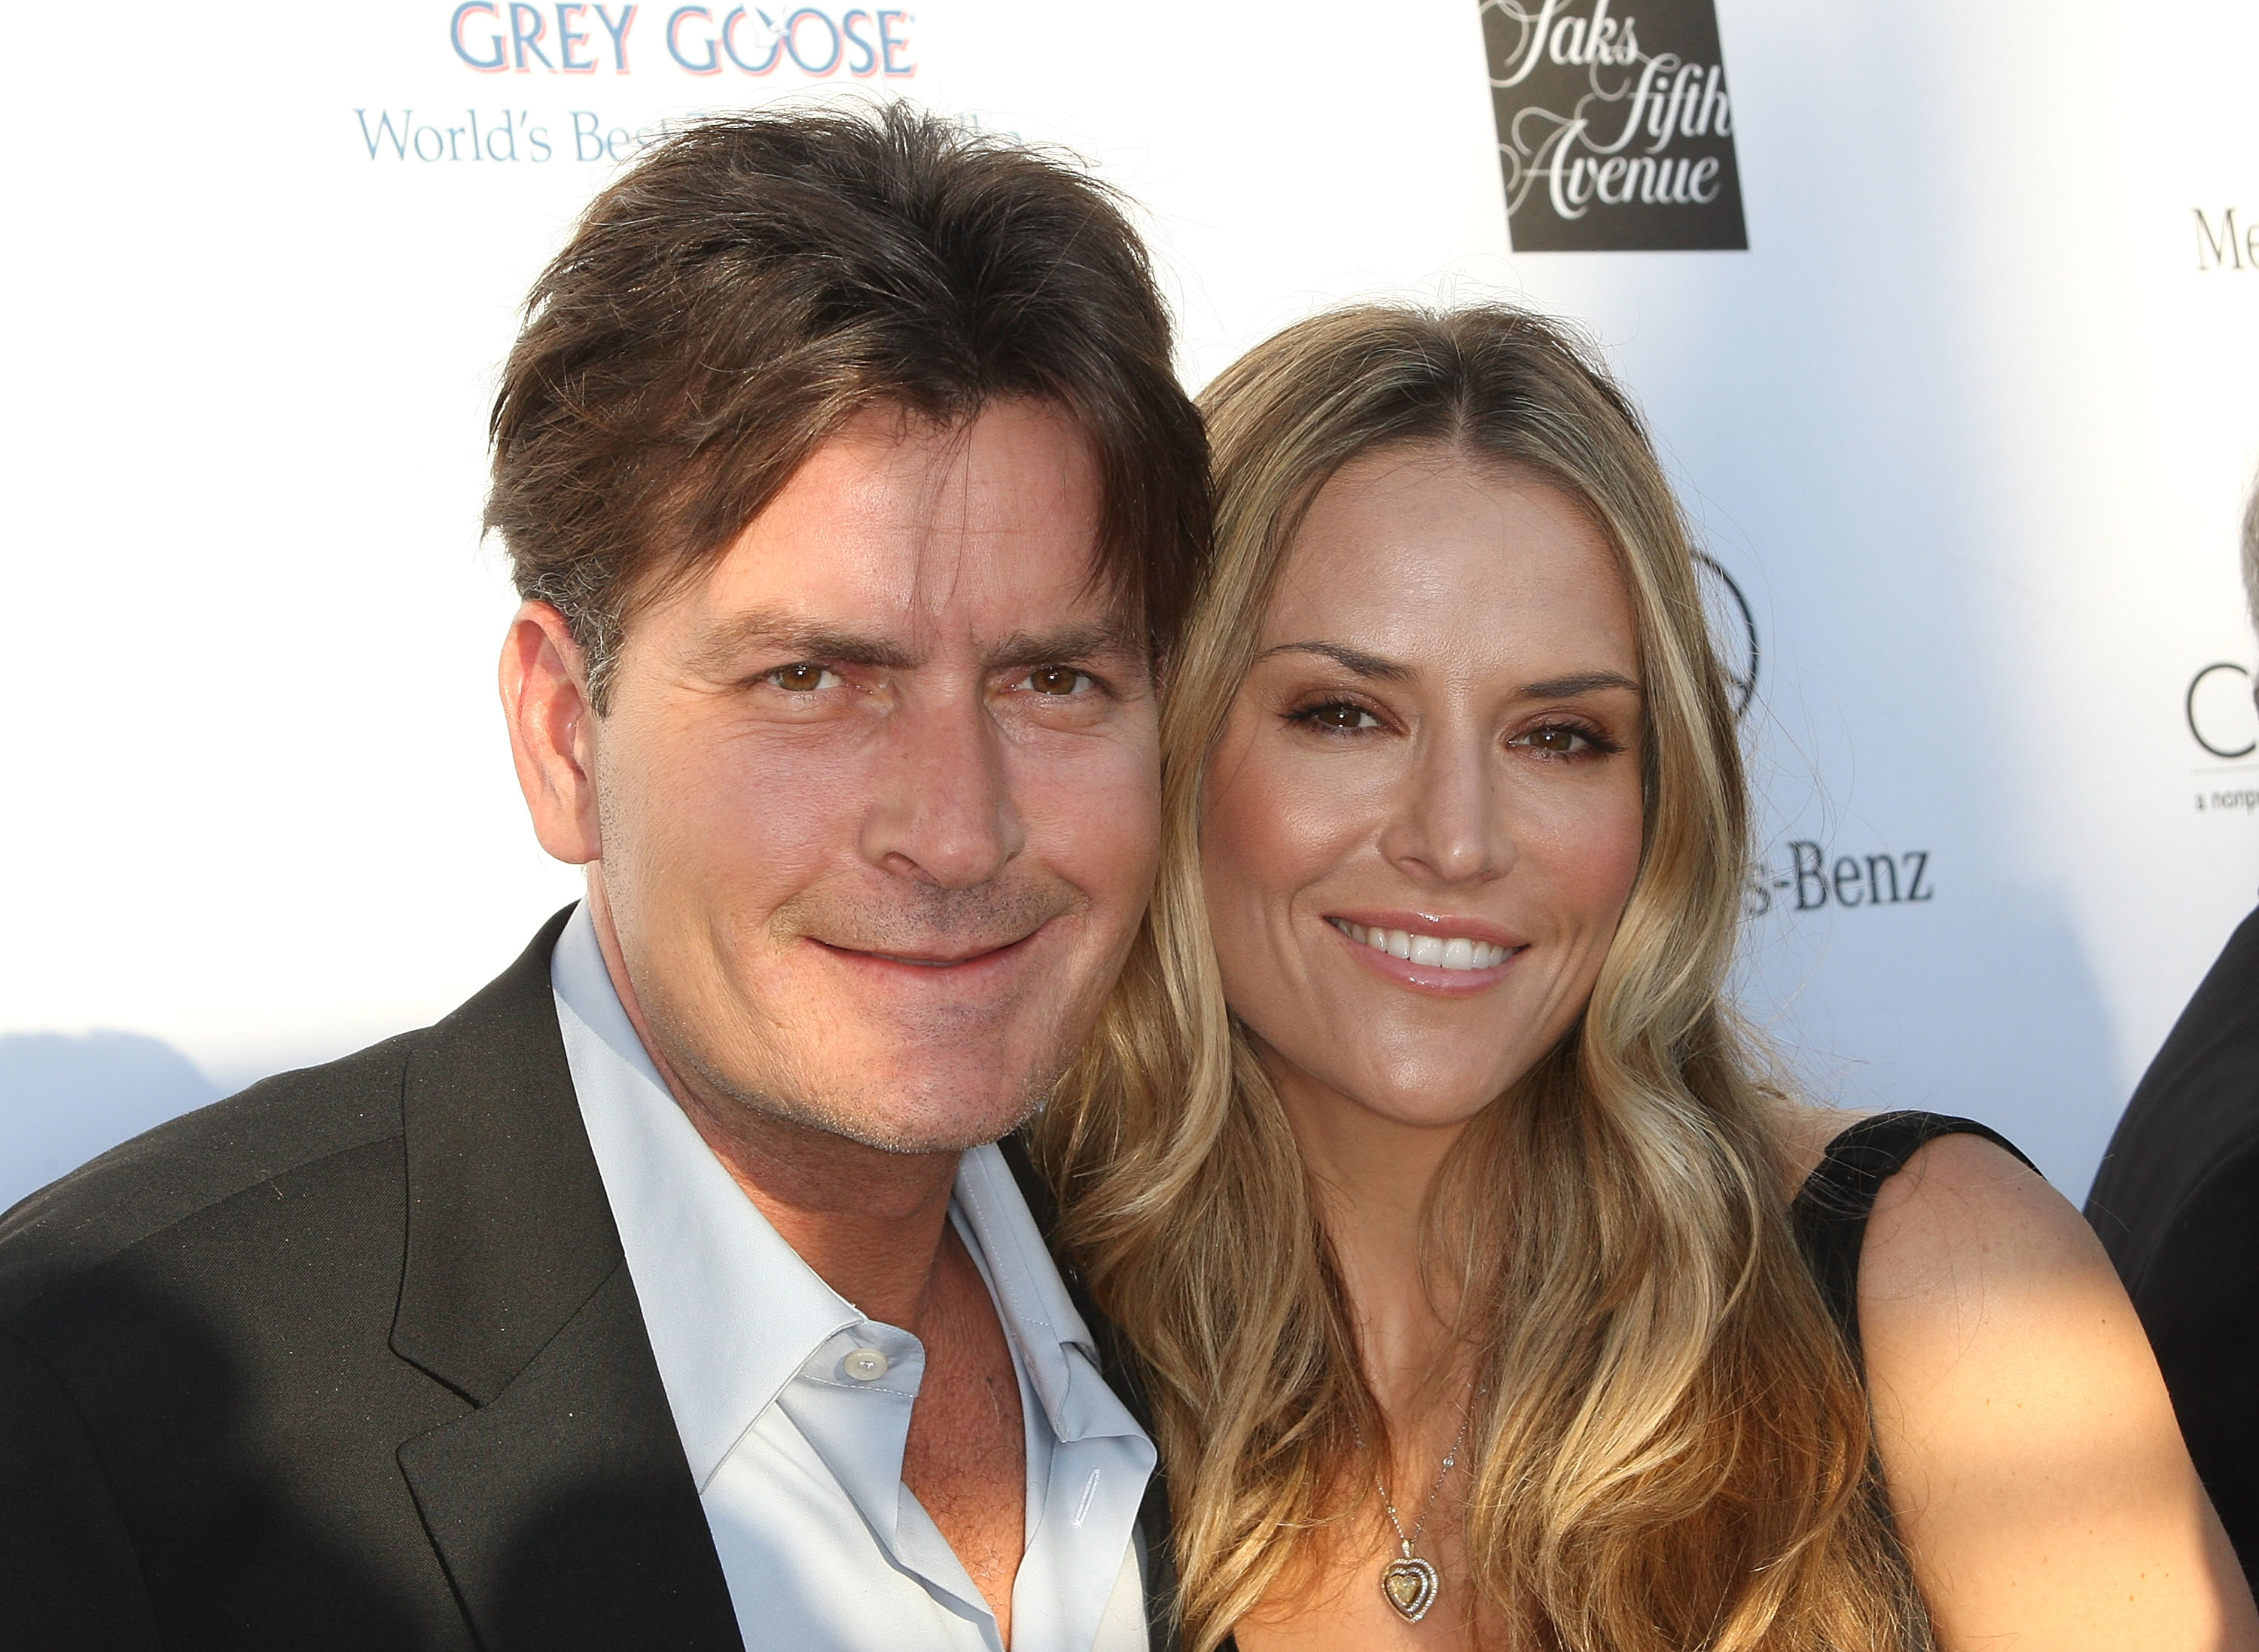 Charlie Sheen shows off his new wife, Brooke Mueller